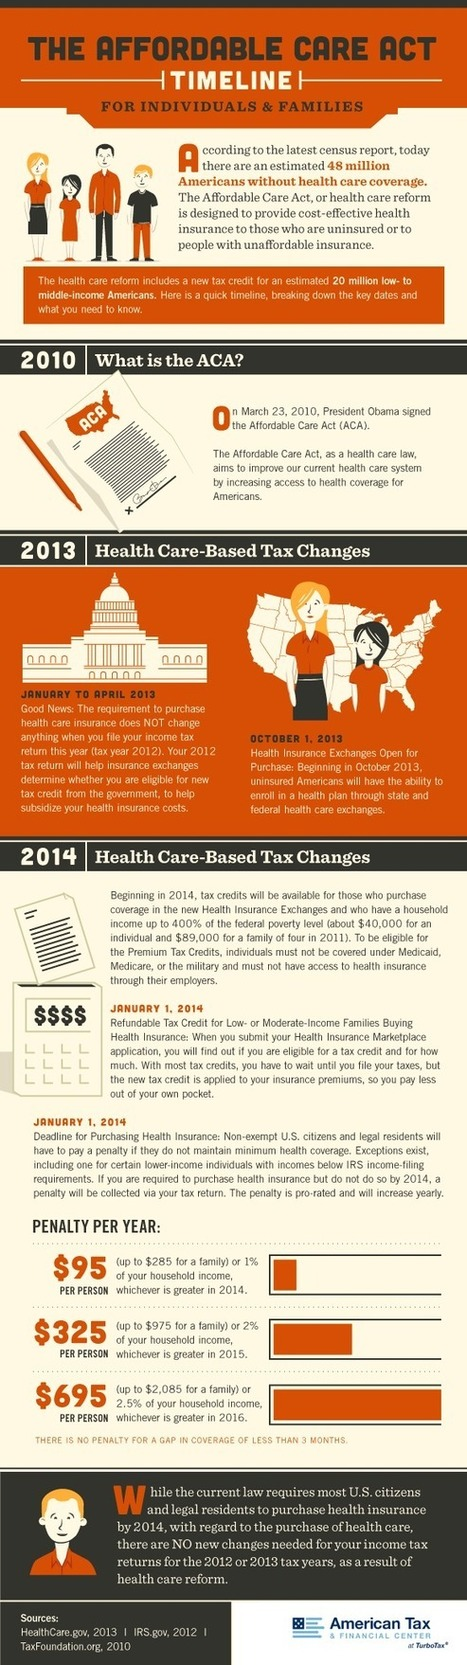 The Affordable Care Act Timeline for Individuals and Families [Infographic]   Infograph   Scoop.it